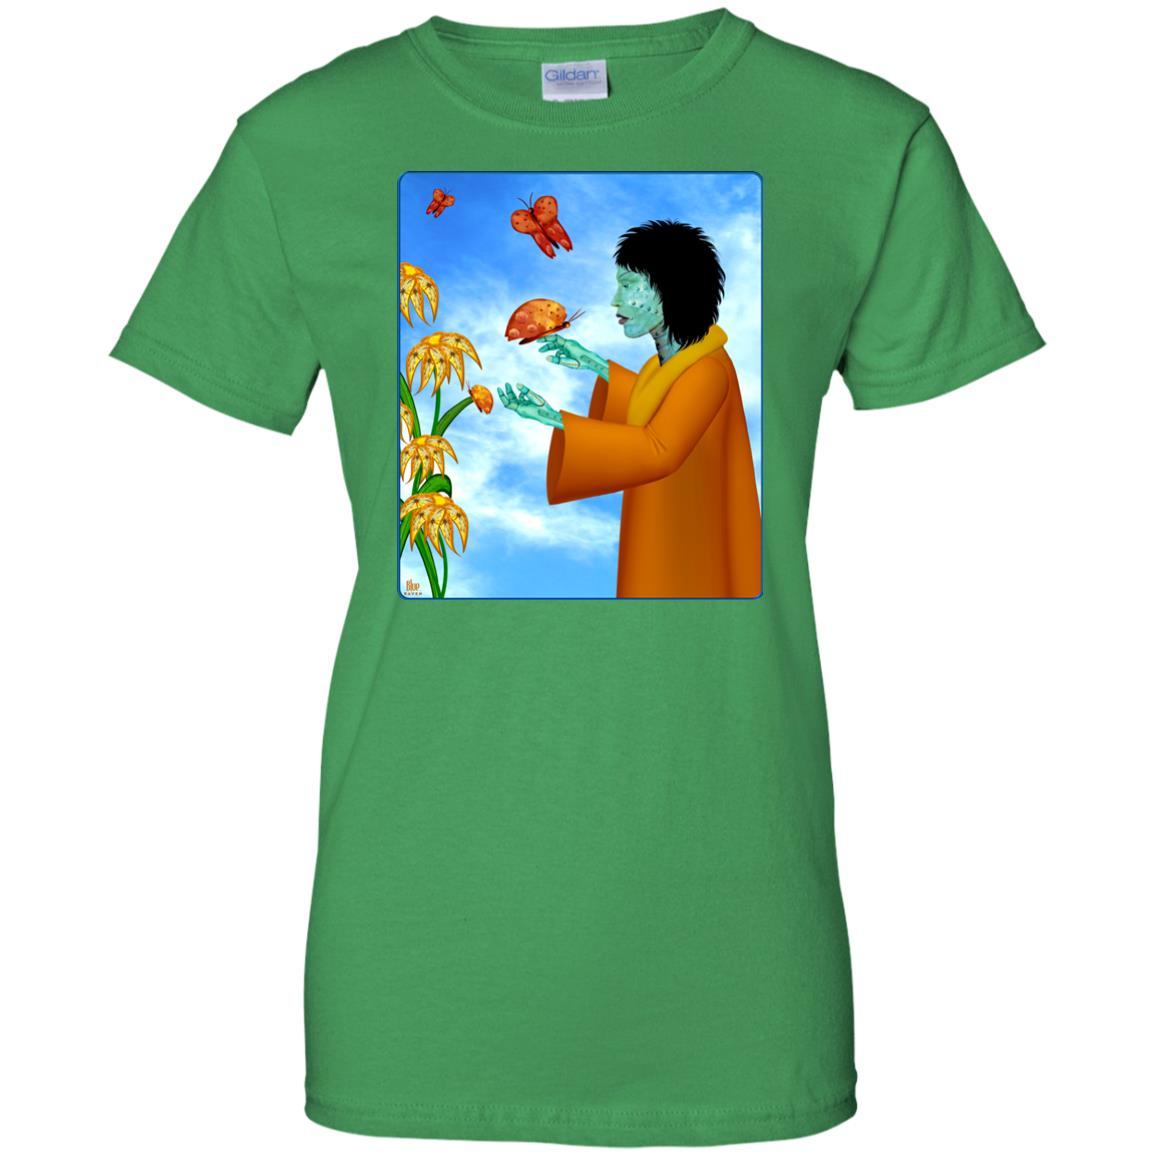 Eye Of The Beholder - Women's Relaxed Fit T-Shirt